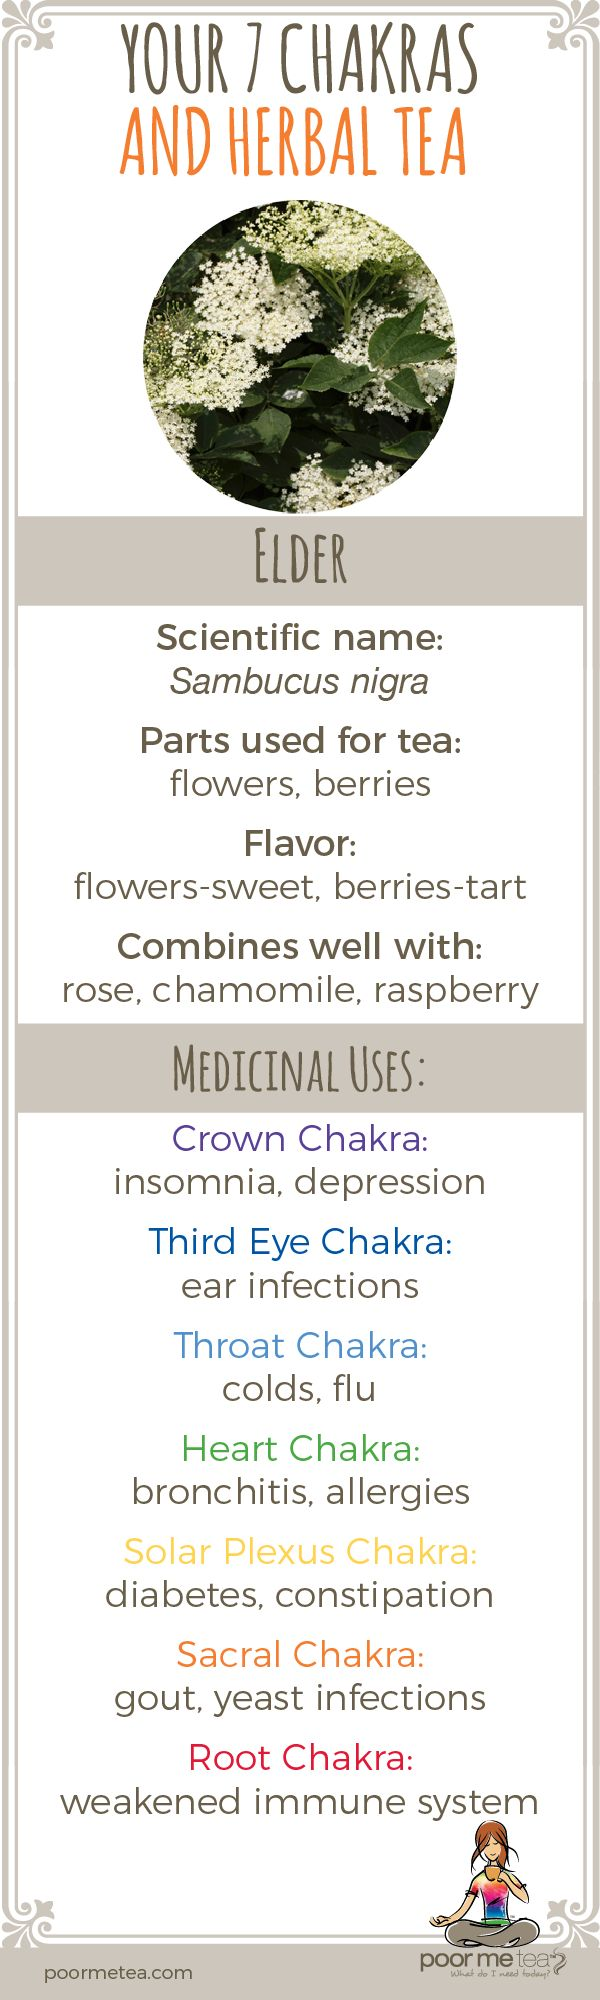 Elder Flower, elder berry health benefits and medicinal uses. Parts used for herbal tea and flavor.  Learn to create your own chakra teas.